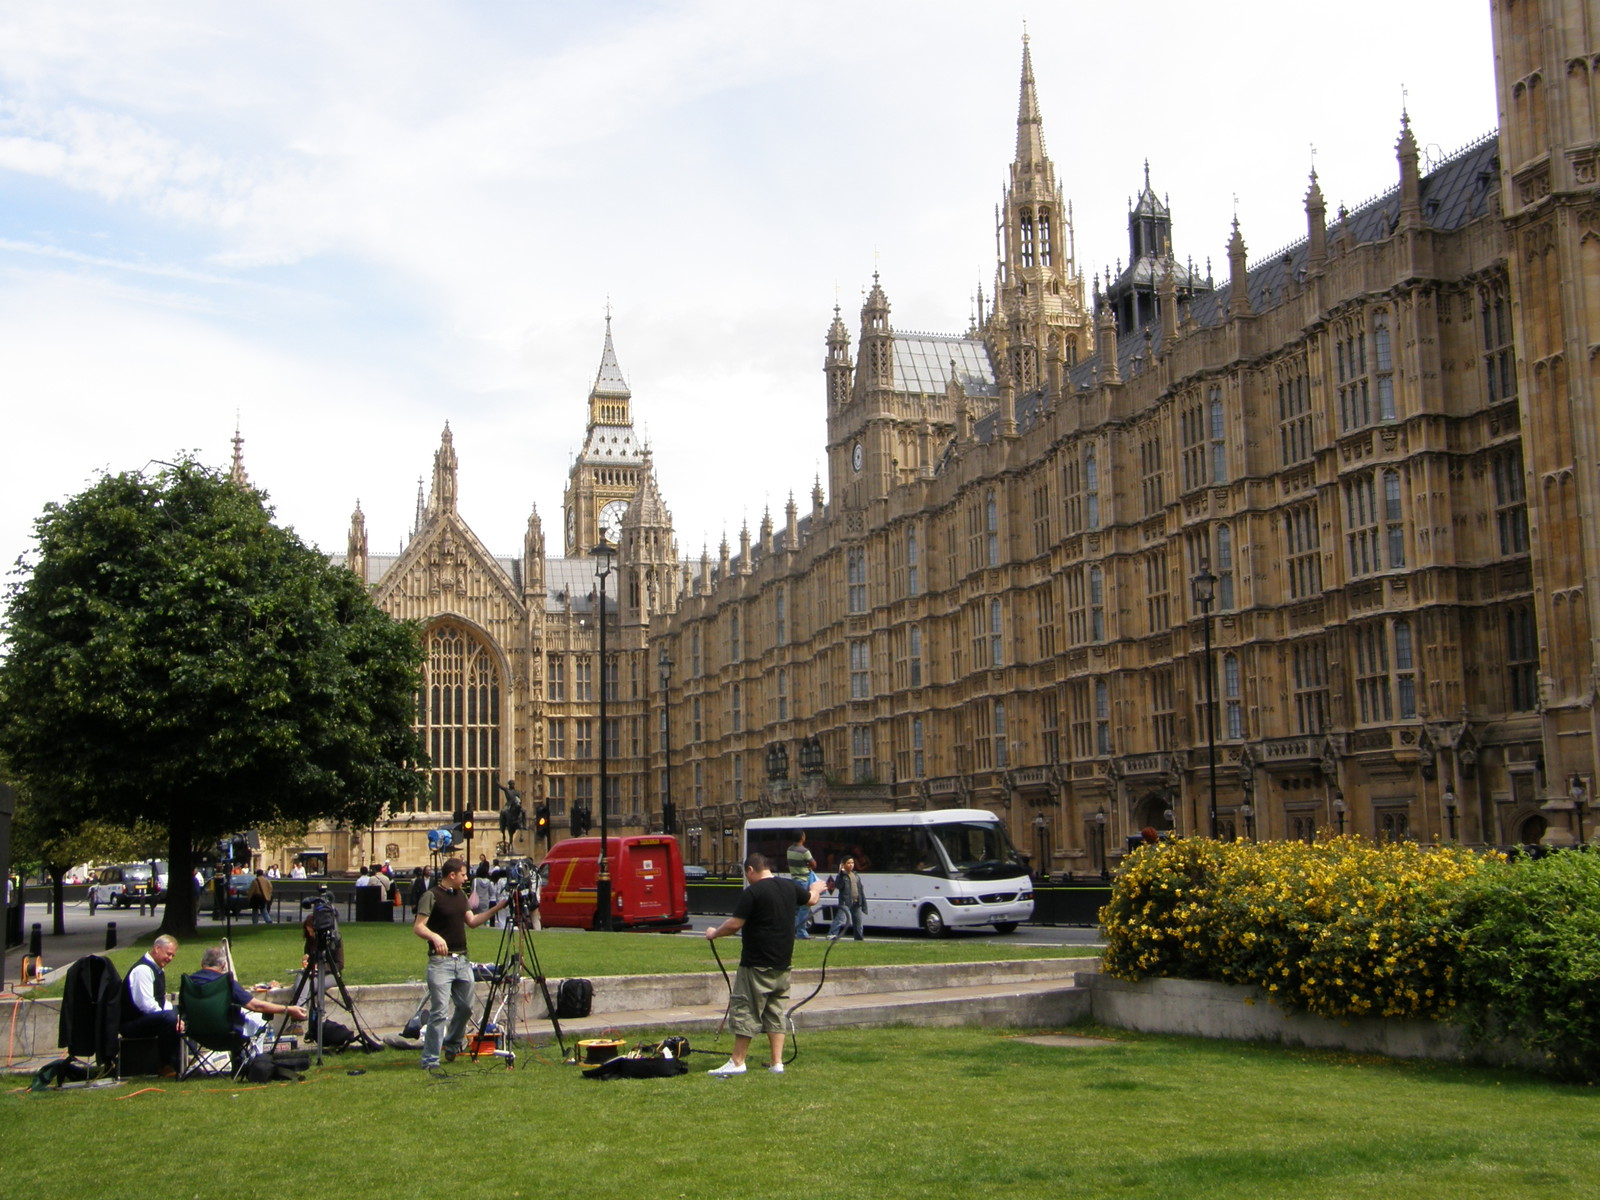 A television crew in front of the Palace of Westminster